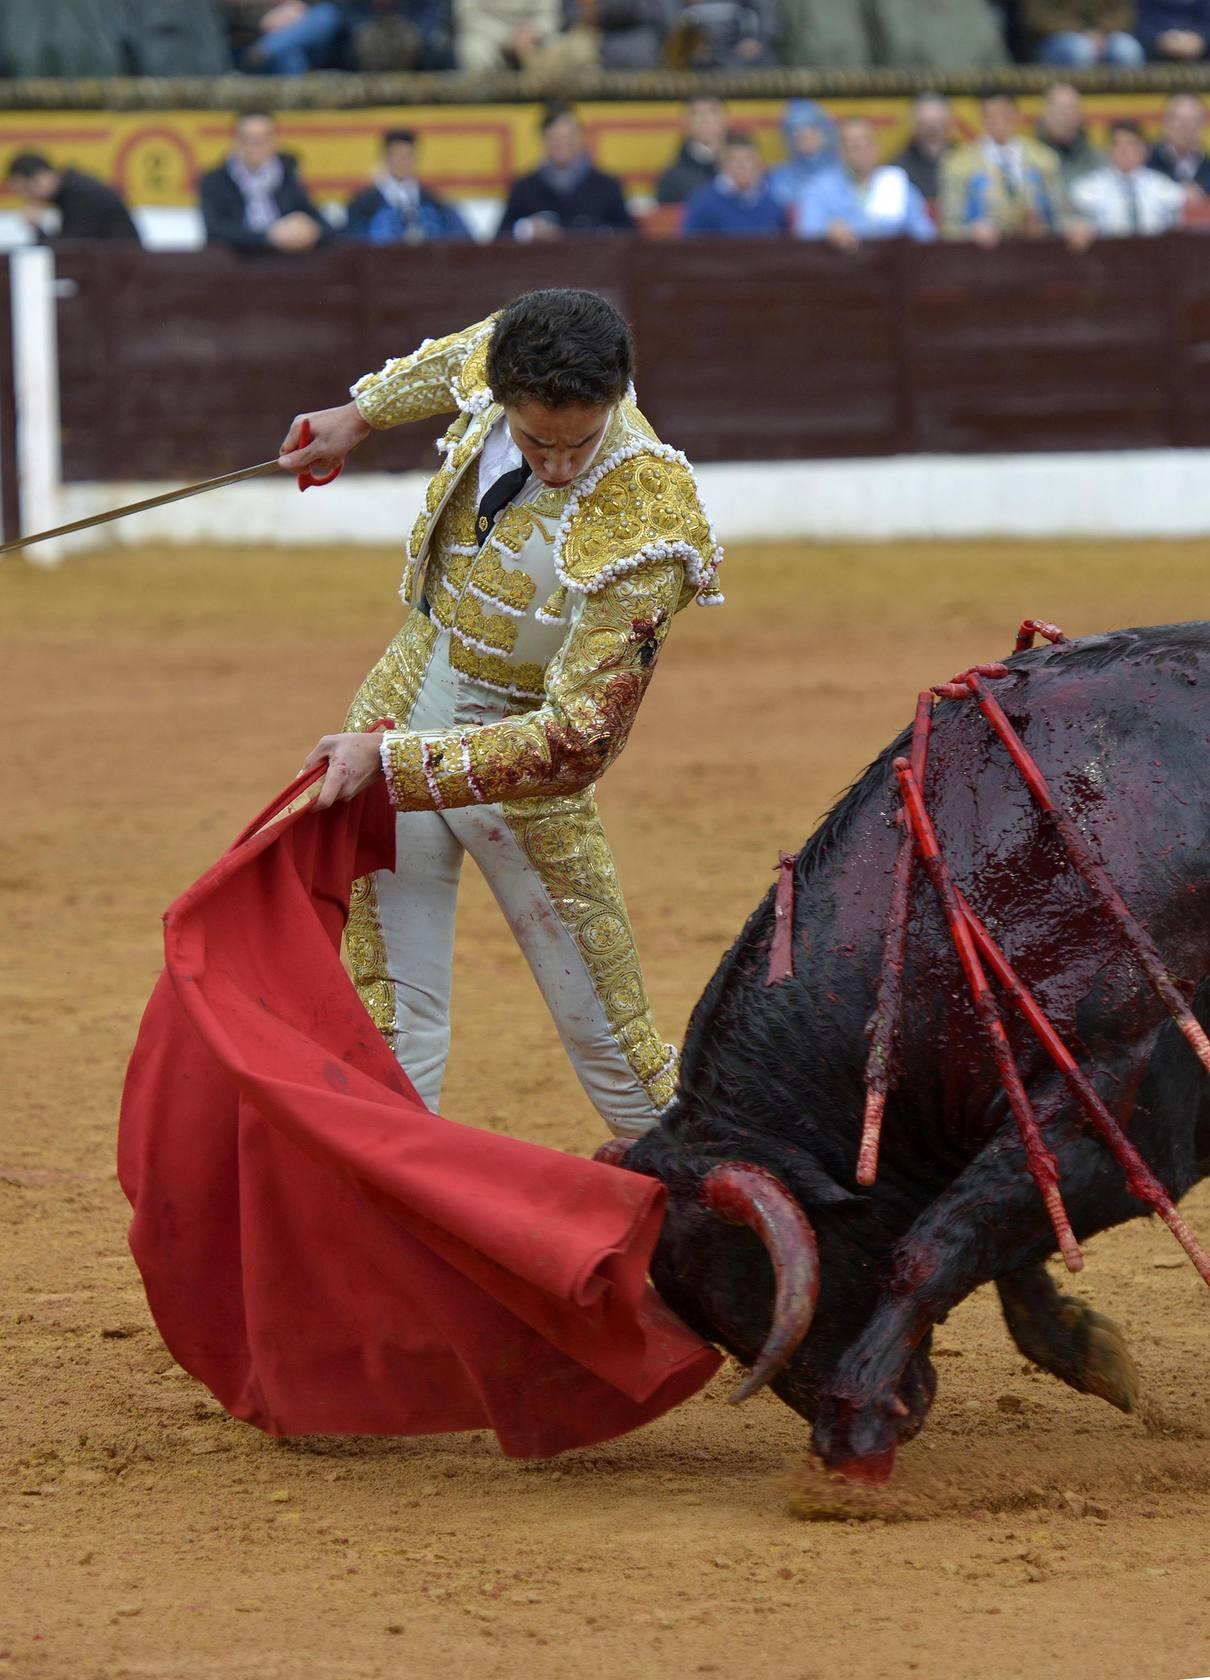 TOROS OLIVENZA | Posada de Maravillas indult&oacute; a 'Corremantas' en la novillada matinal